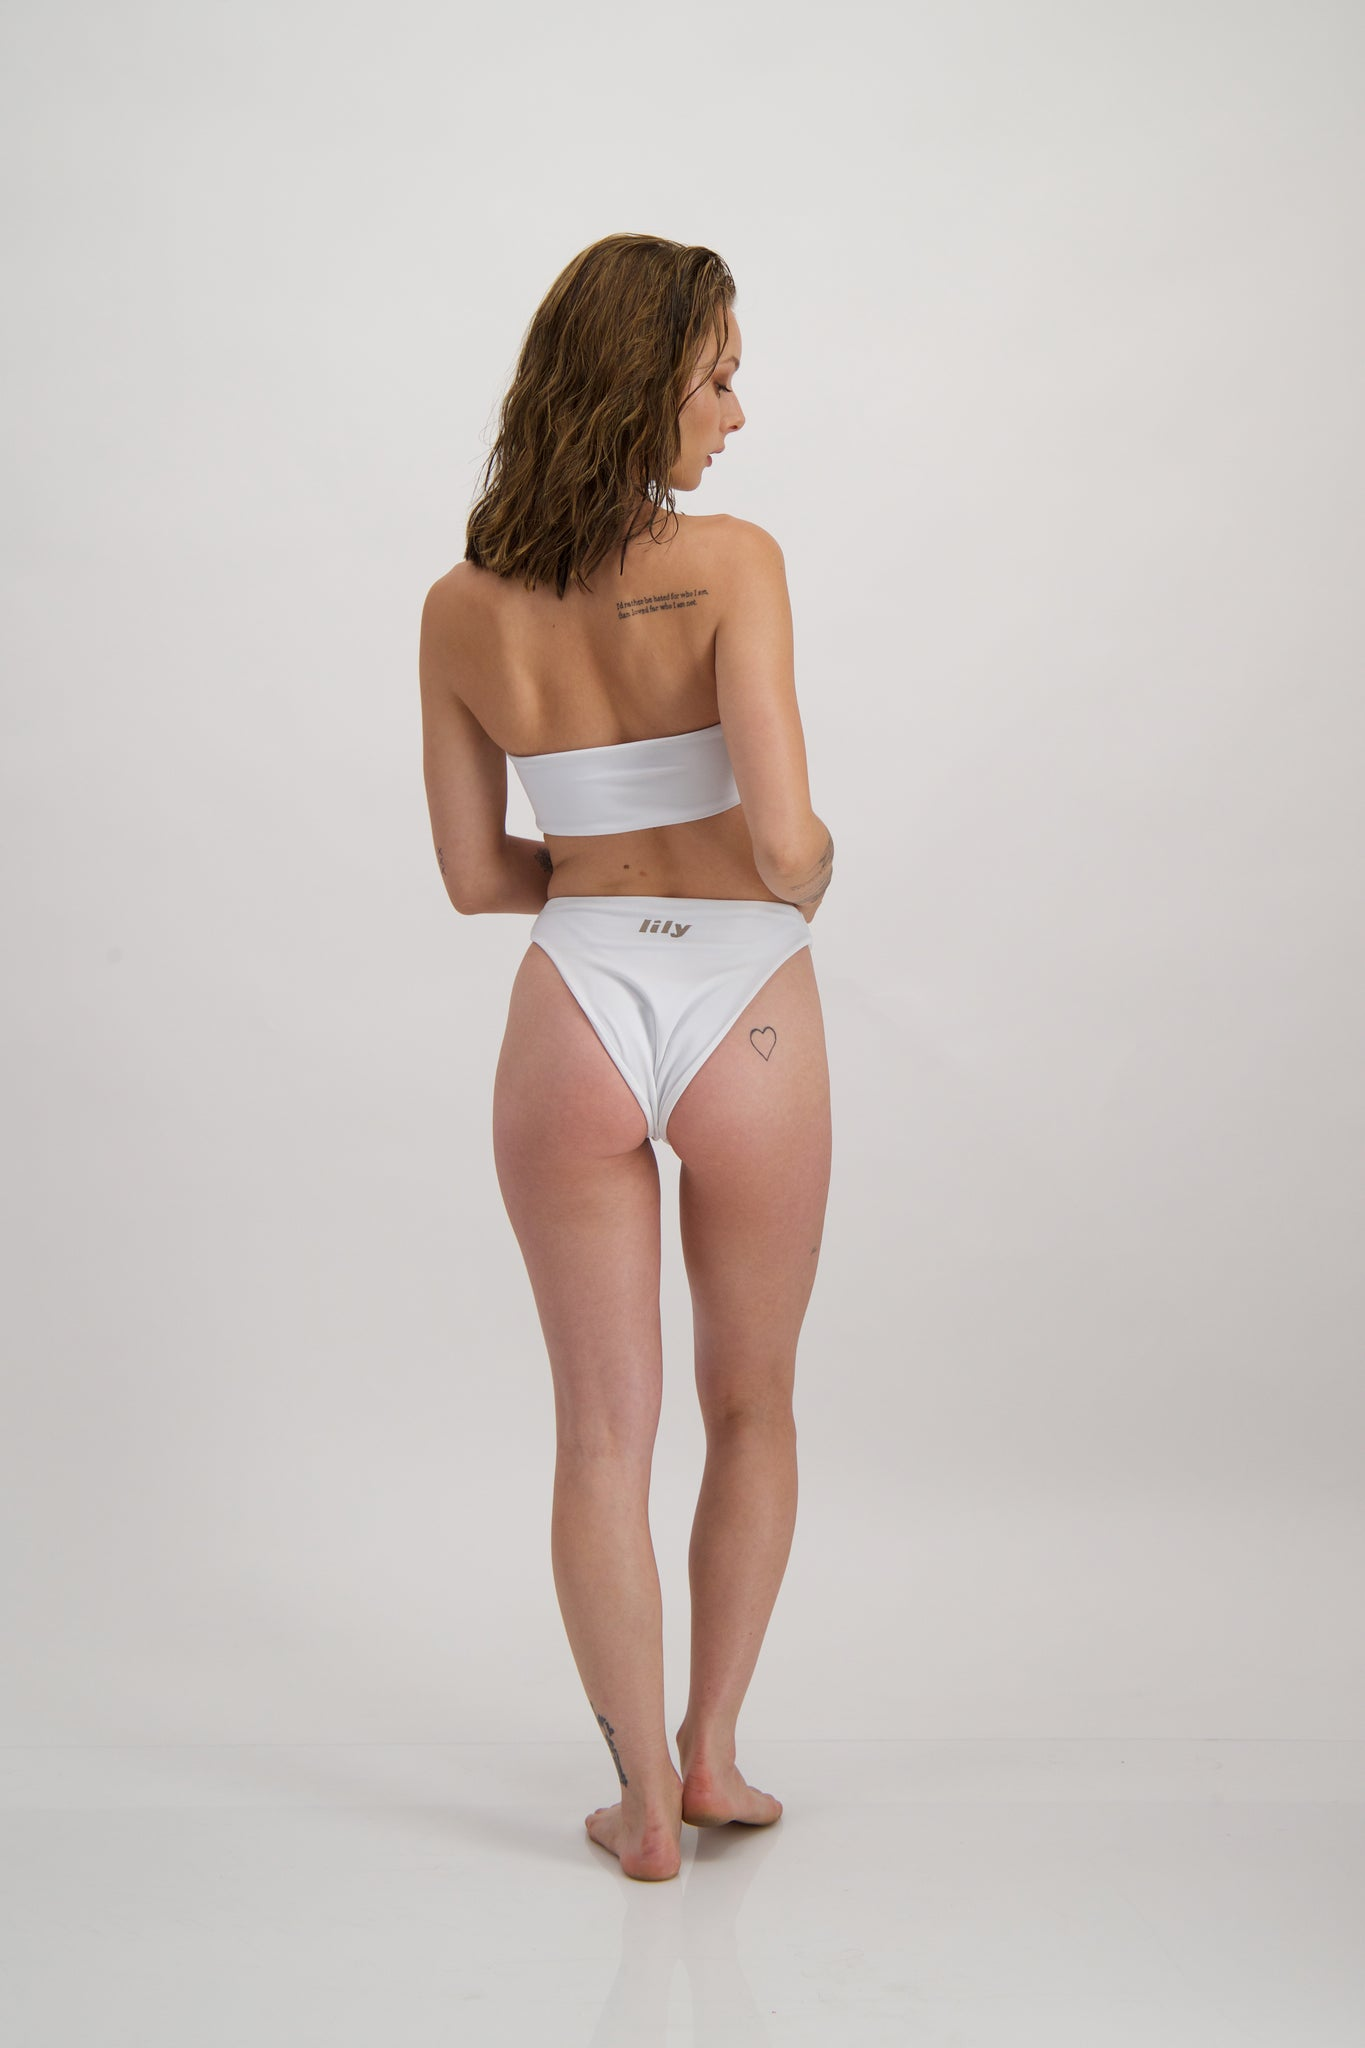 Forget-me-not bikini bottom in Blanc